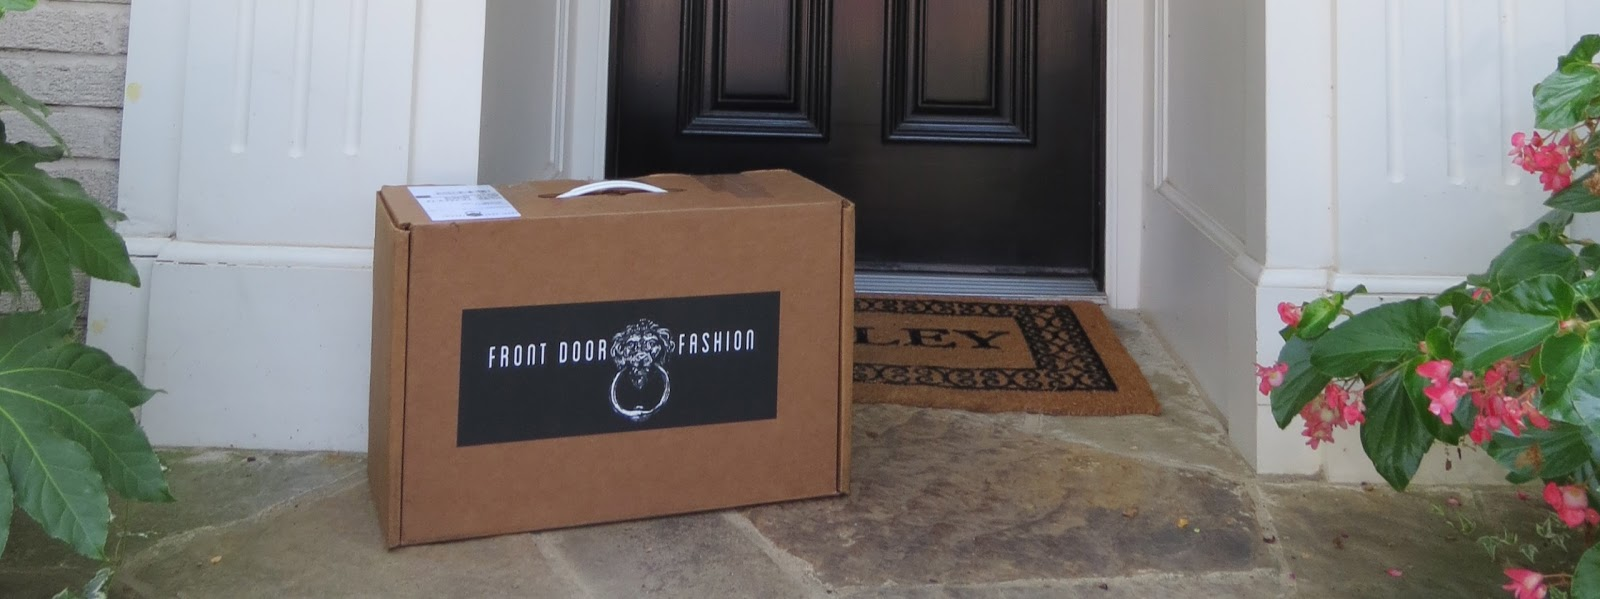 Doorstep Delivery from Front Door Fashion ~ Oh So Cynthia